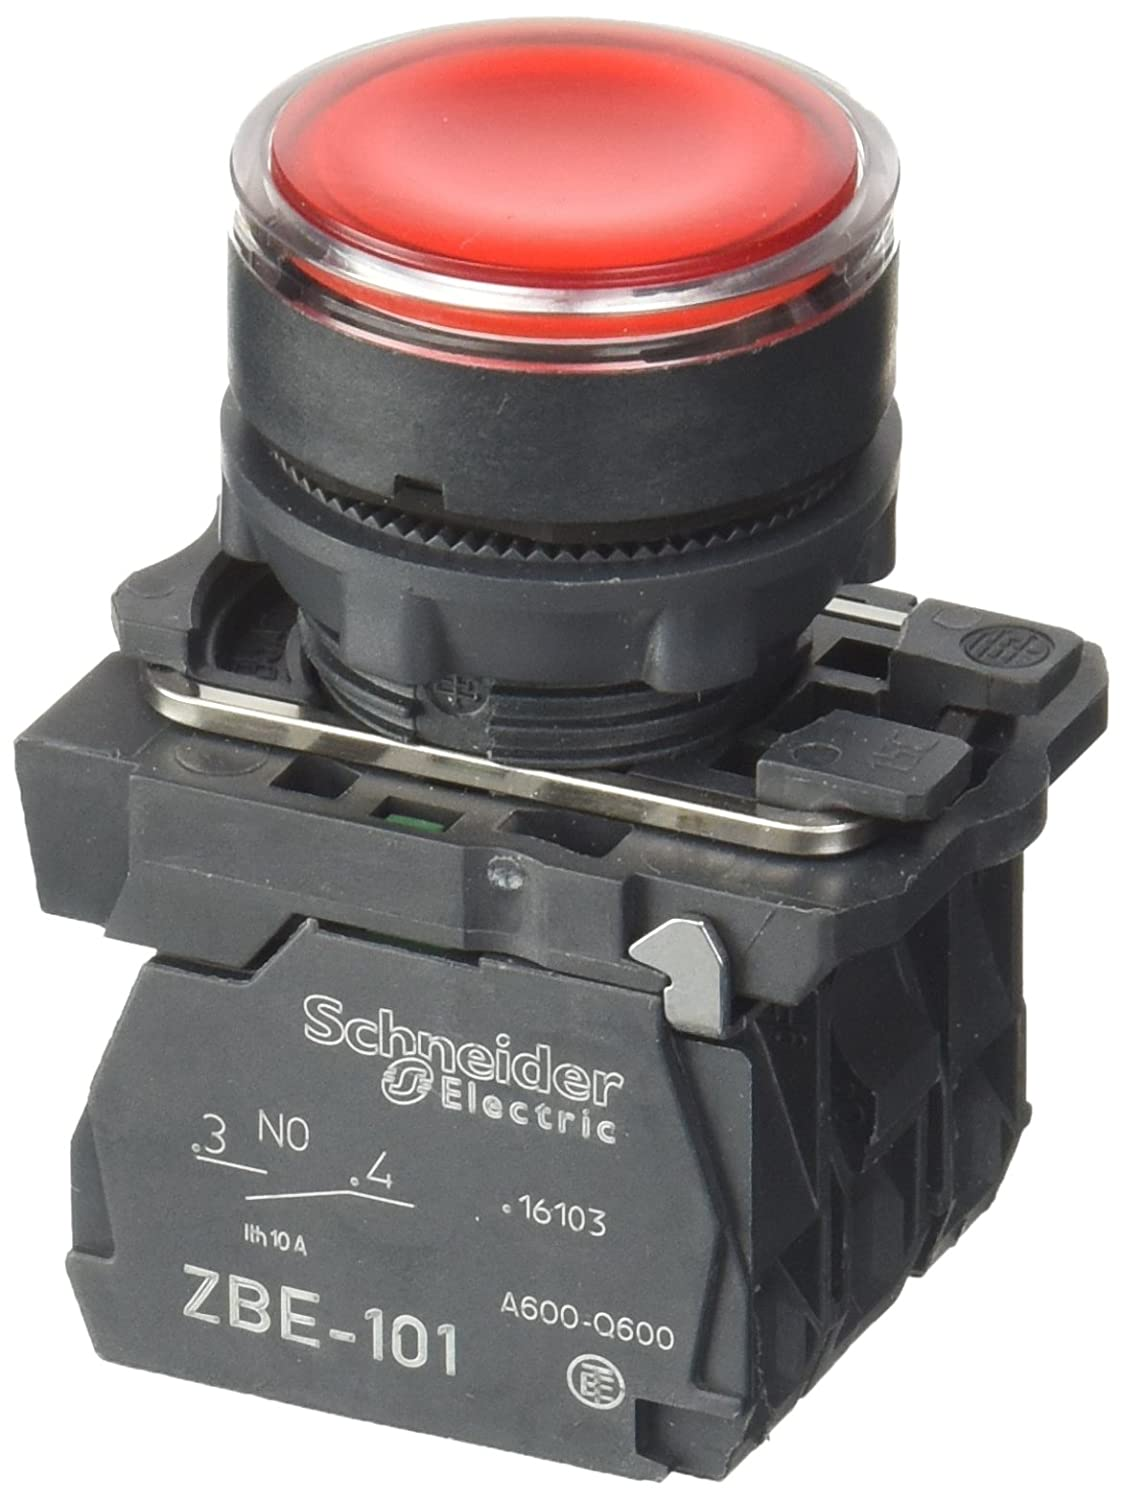 Schneider Electric XB5AW34B5 Harmony bouton-poussoir lumineux, impulsion, plastique collerette, 1O+1F, 22 mm diamè tre de fixation, 24V, rouge 22 mm diamètre de fixation